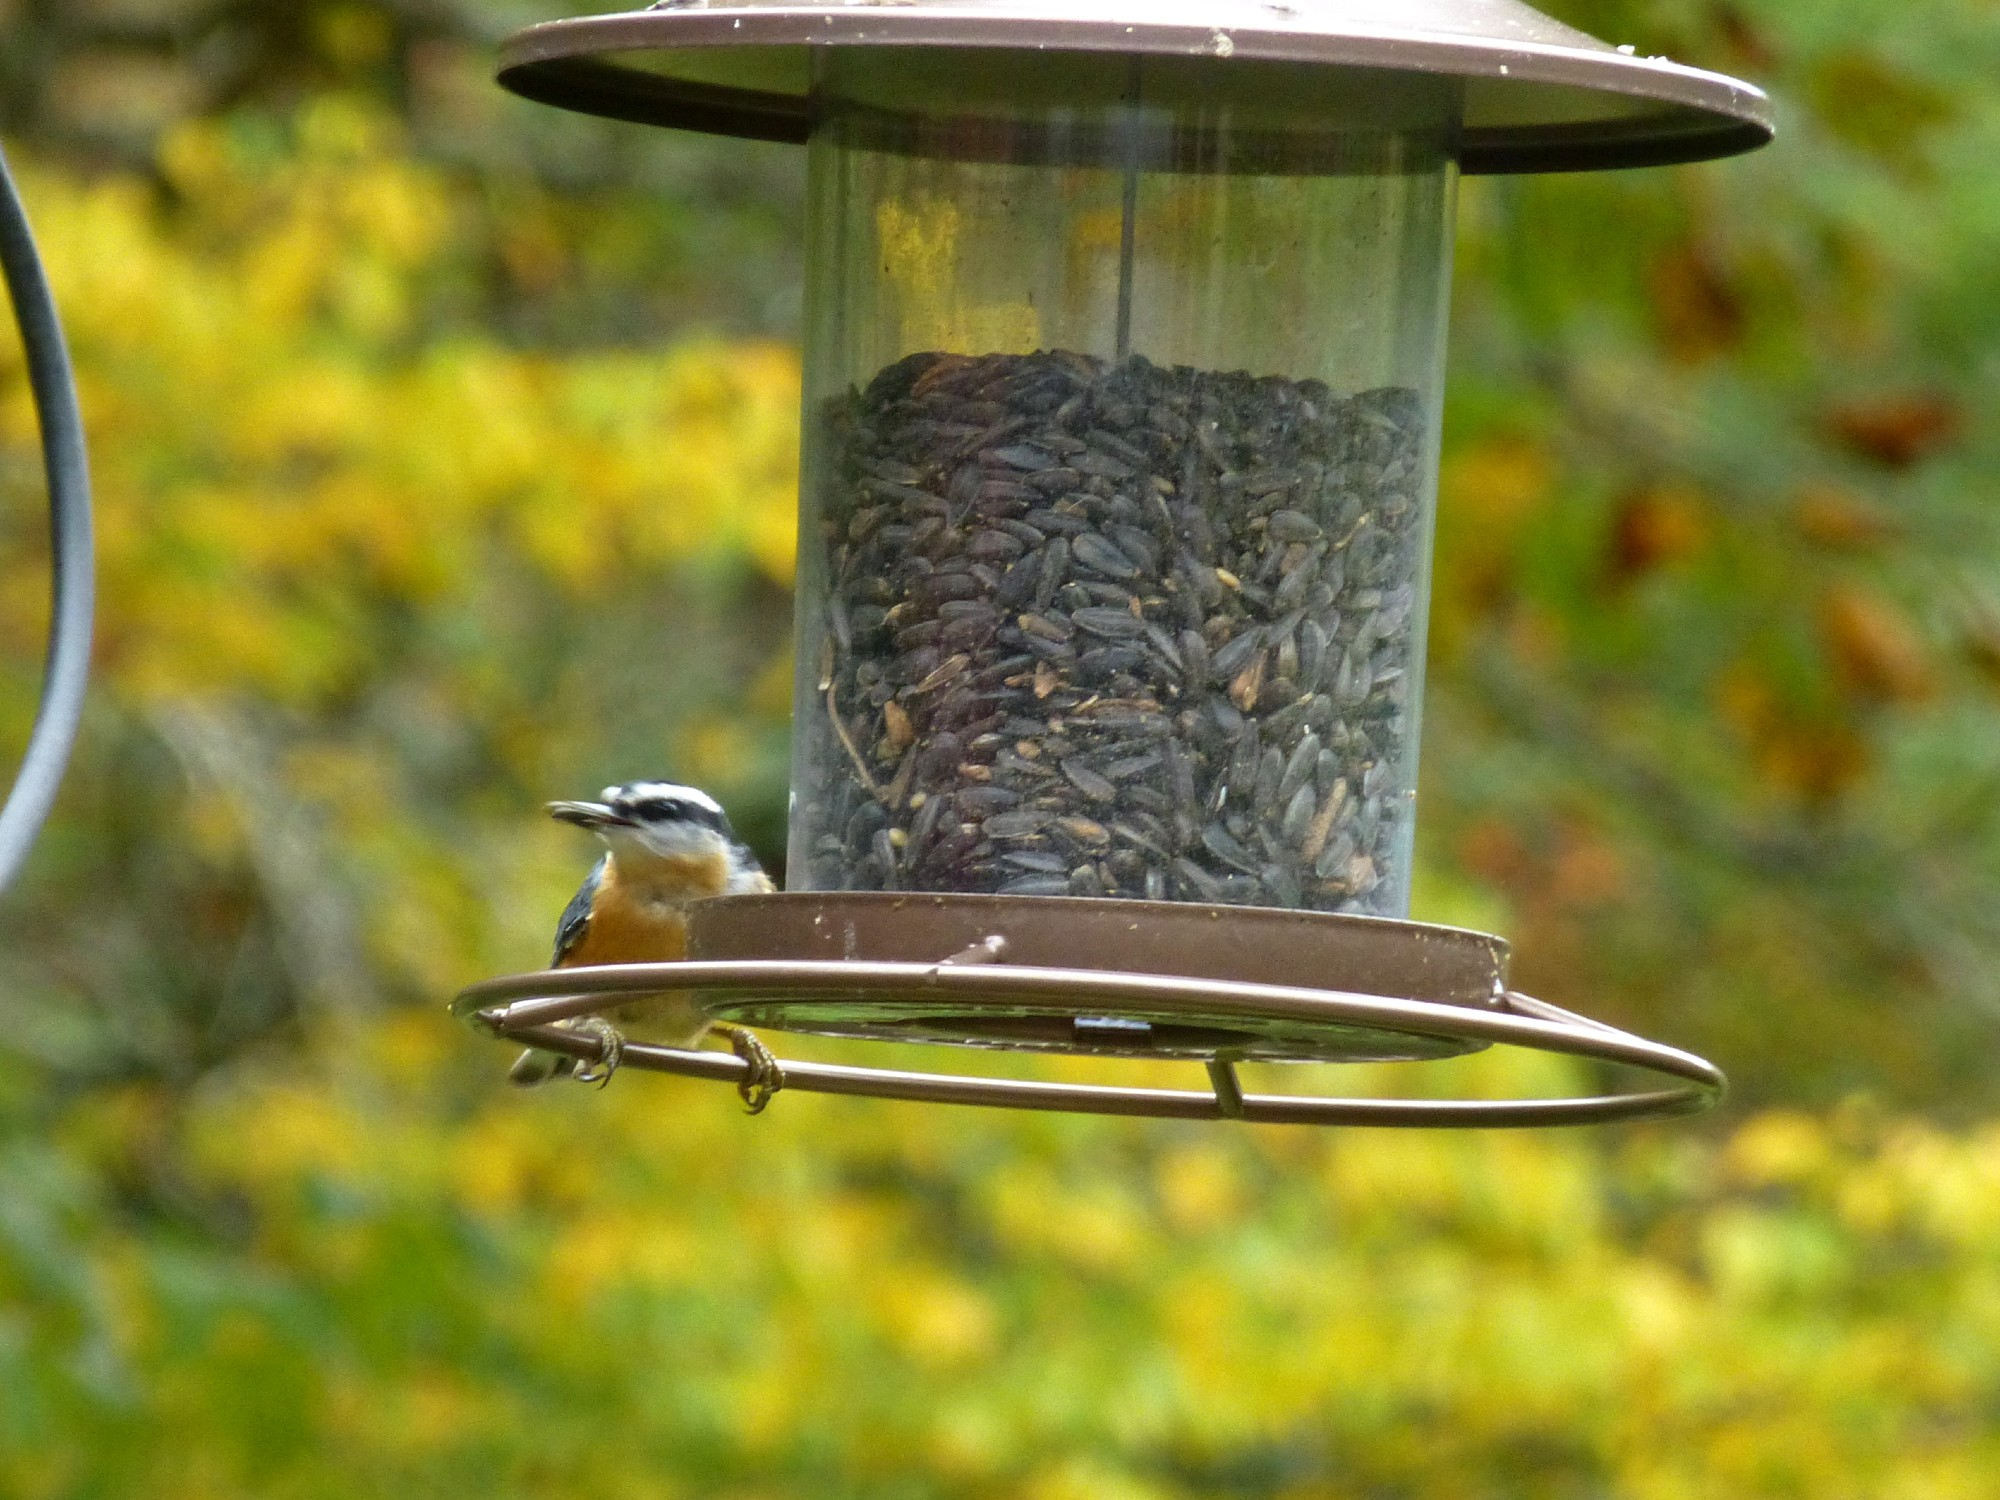 Red-breasted nuthatch bird on a bird feeder